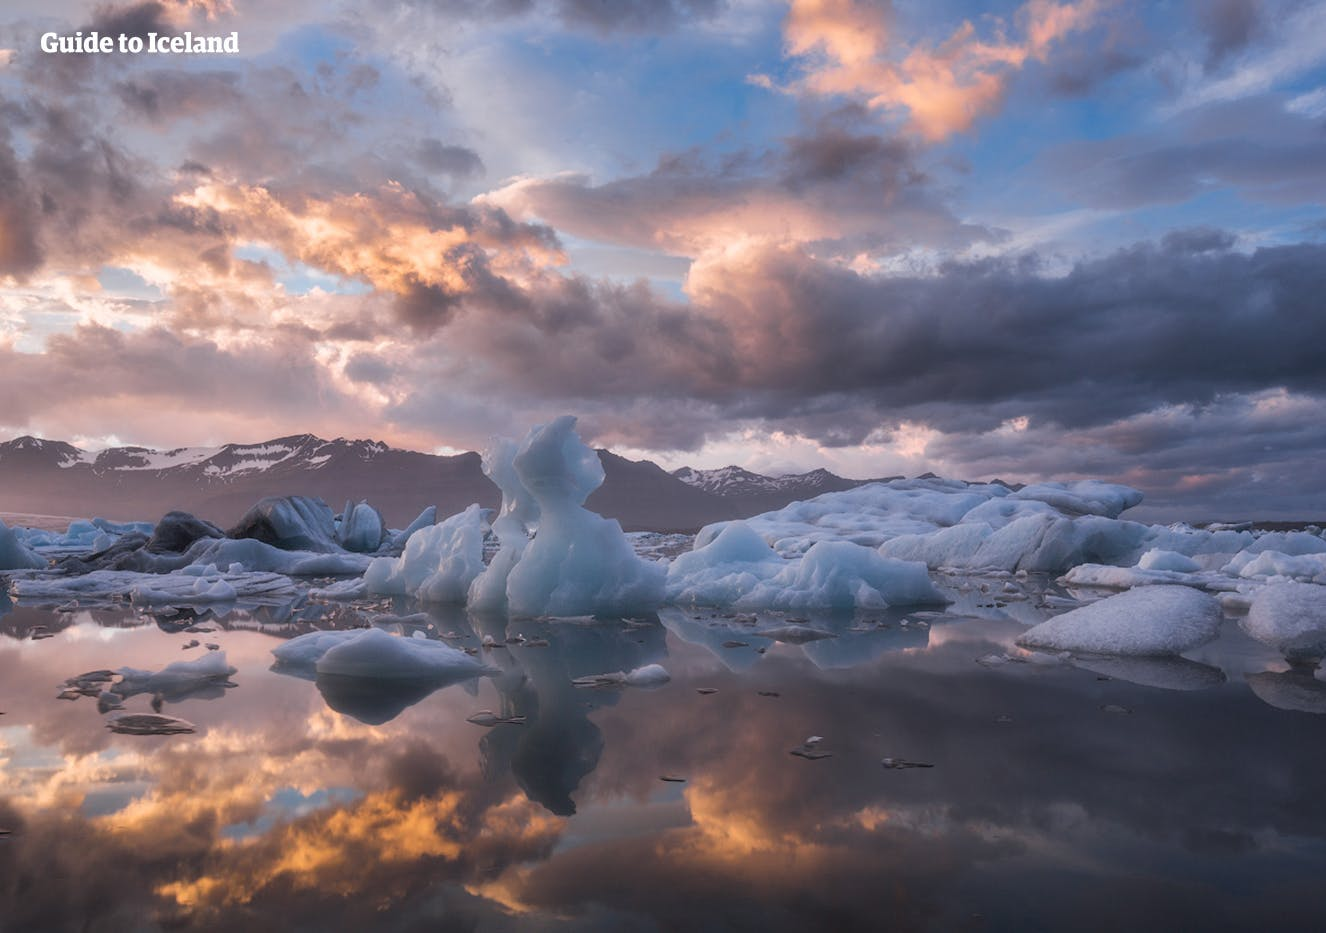 Jökulsárlón glacier lagoon is known as 'The Crown Jewel of Iceland' thanks to its stunning, ethereal aesthetic.